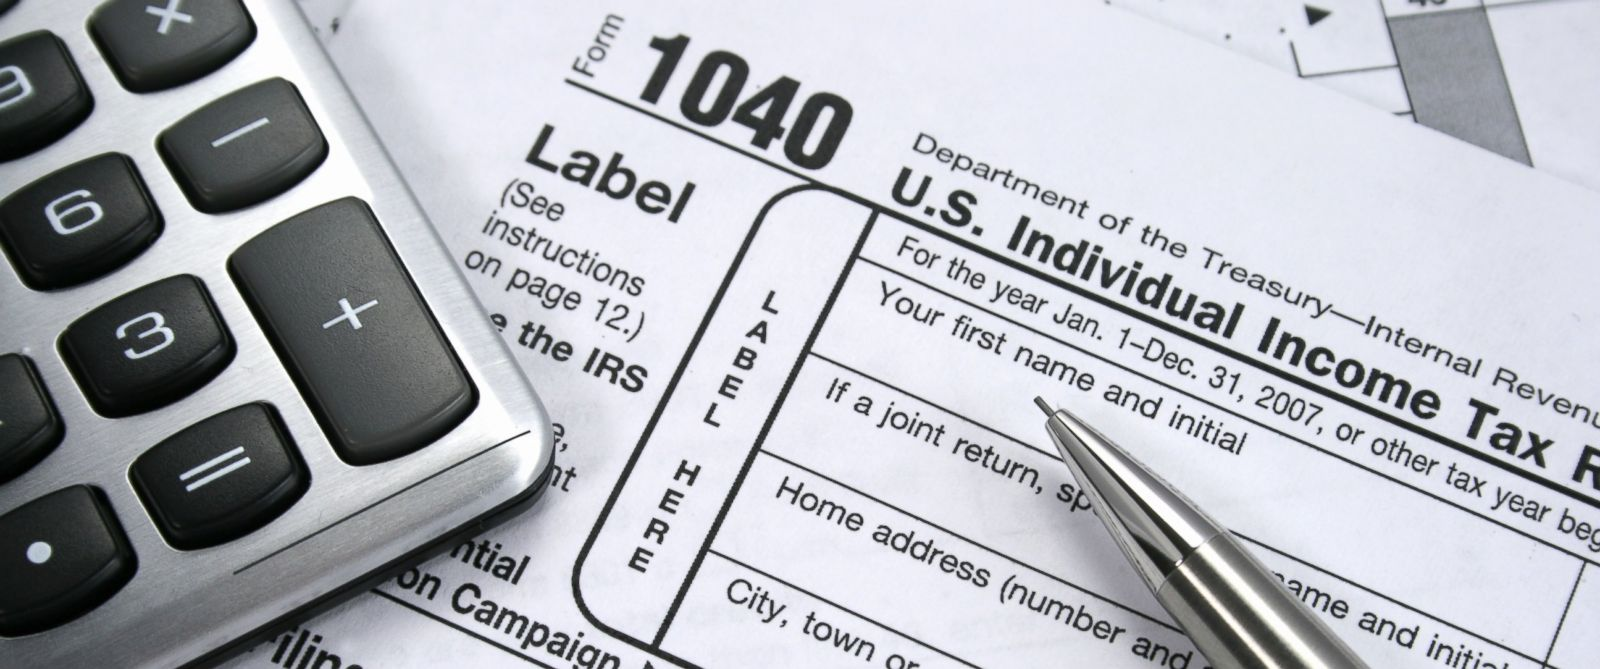 As tax season approaches, beware of tax related scams